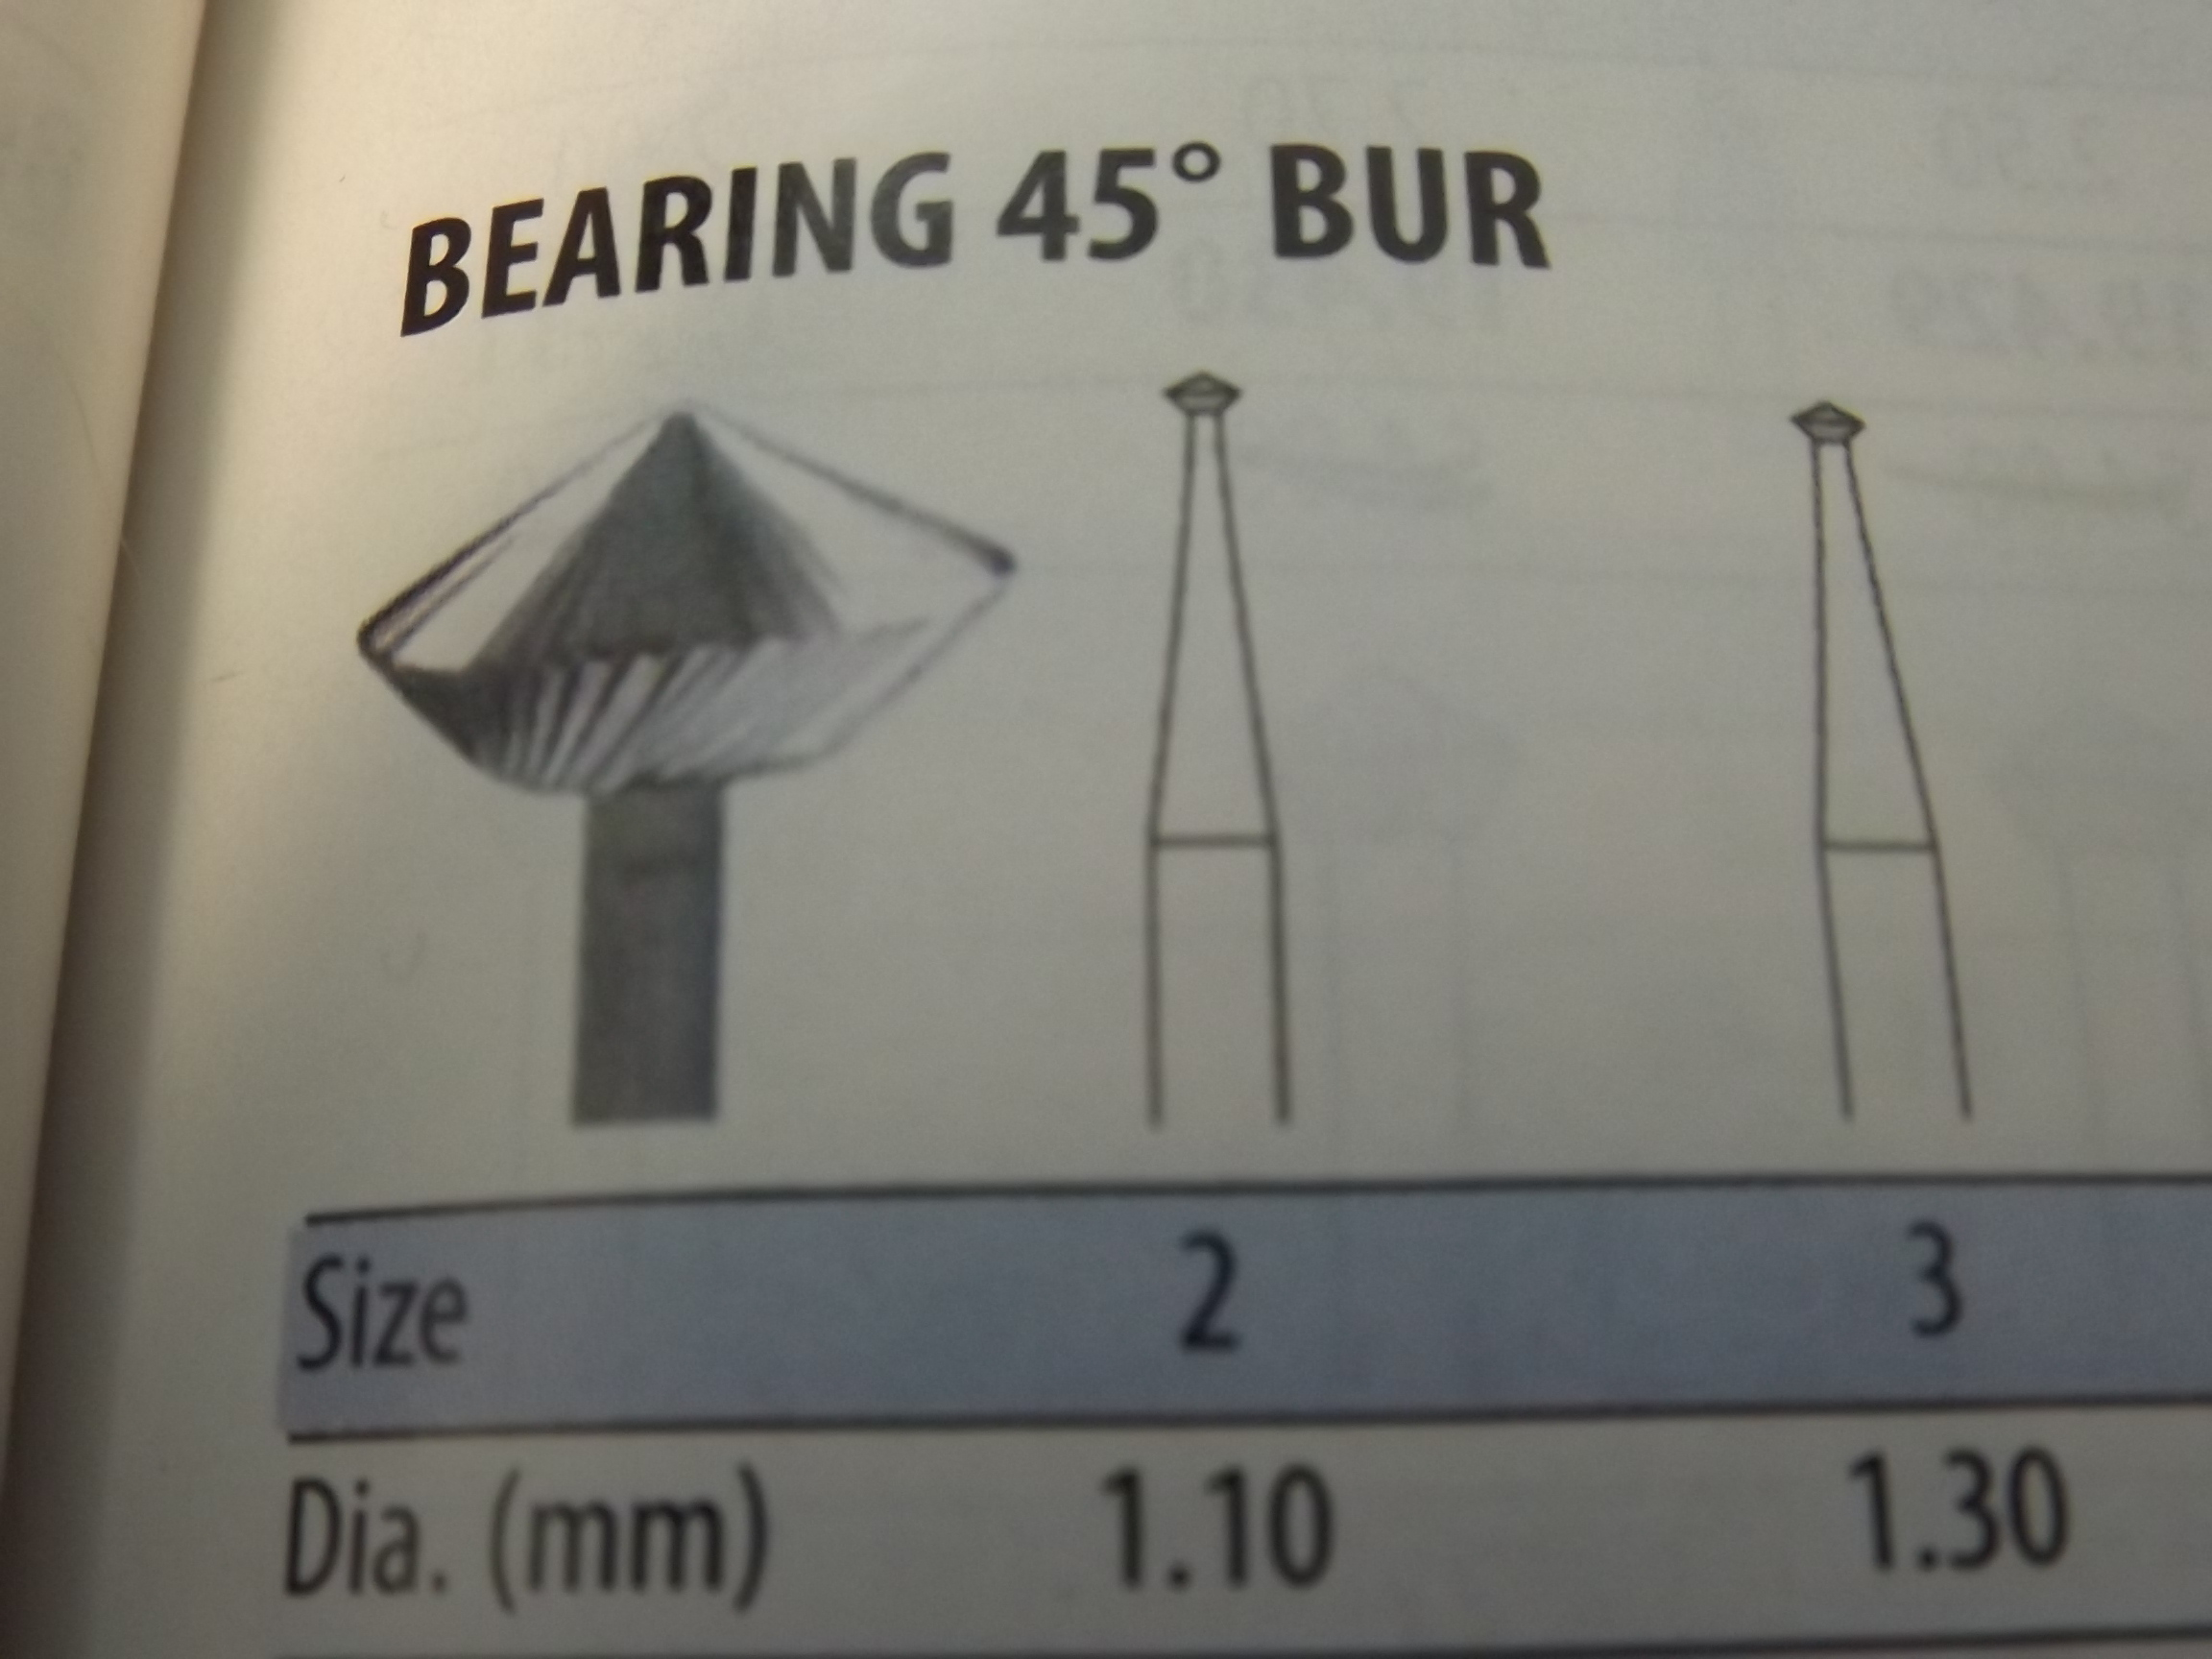 BR763/14 Hi Speed Steel 45* Bearing Burs #14--Grobet #19.394